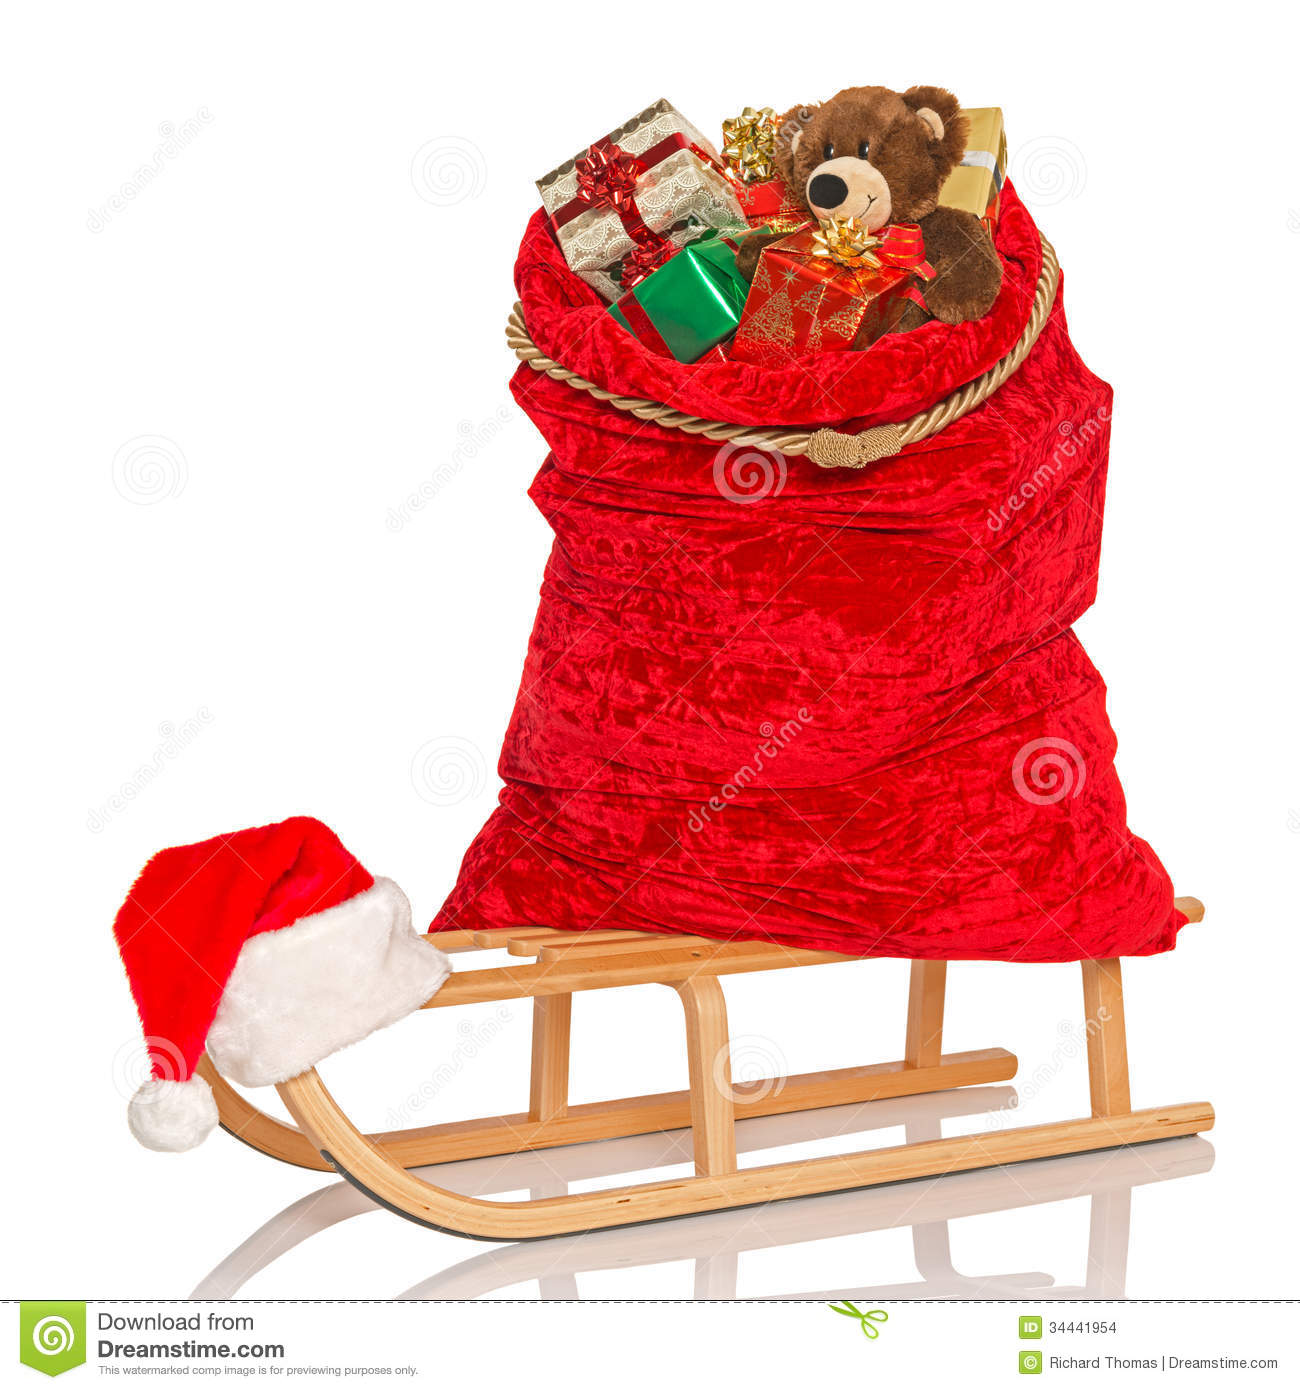 Santas Sack On Sledge Isolated Stock Images - Image: 34441954